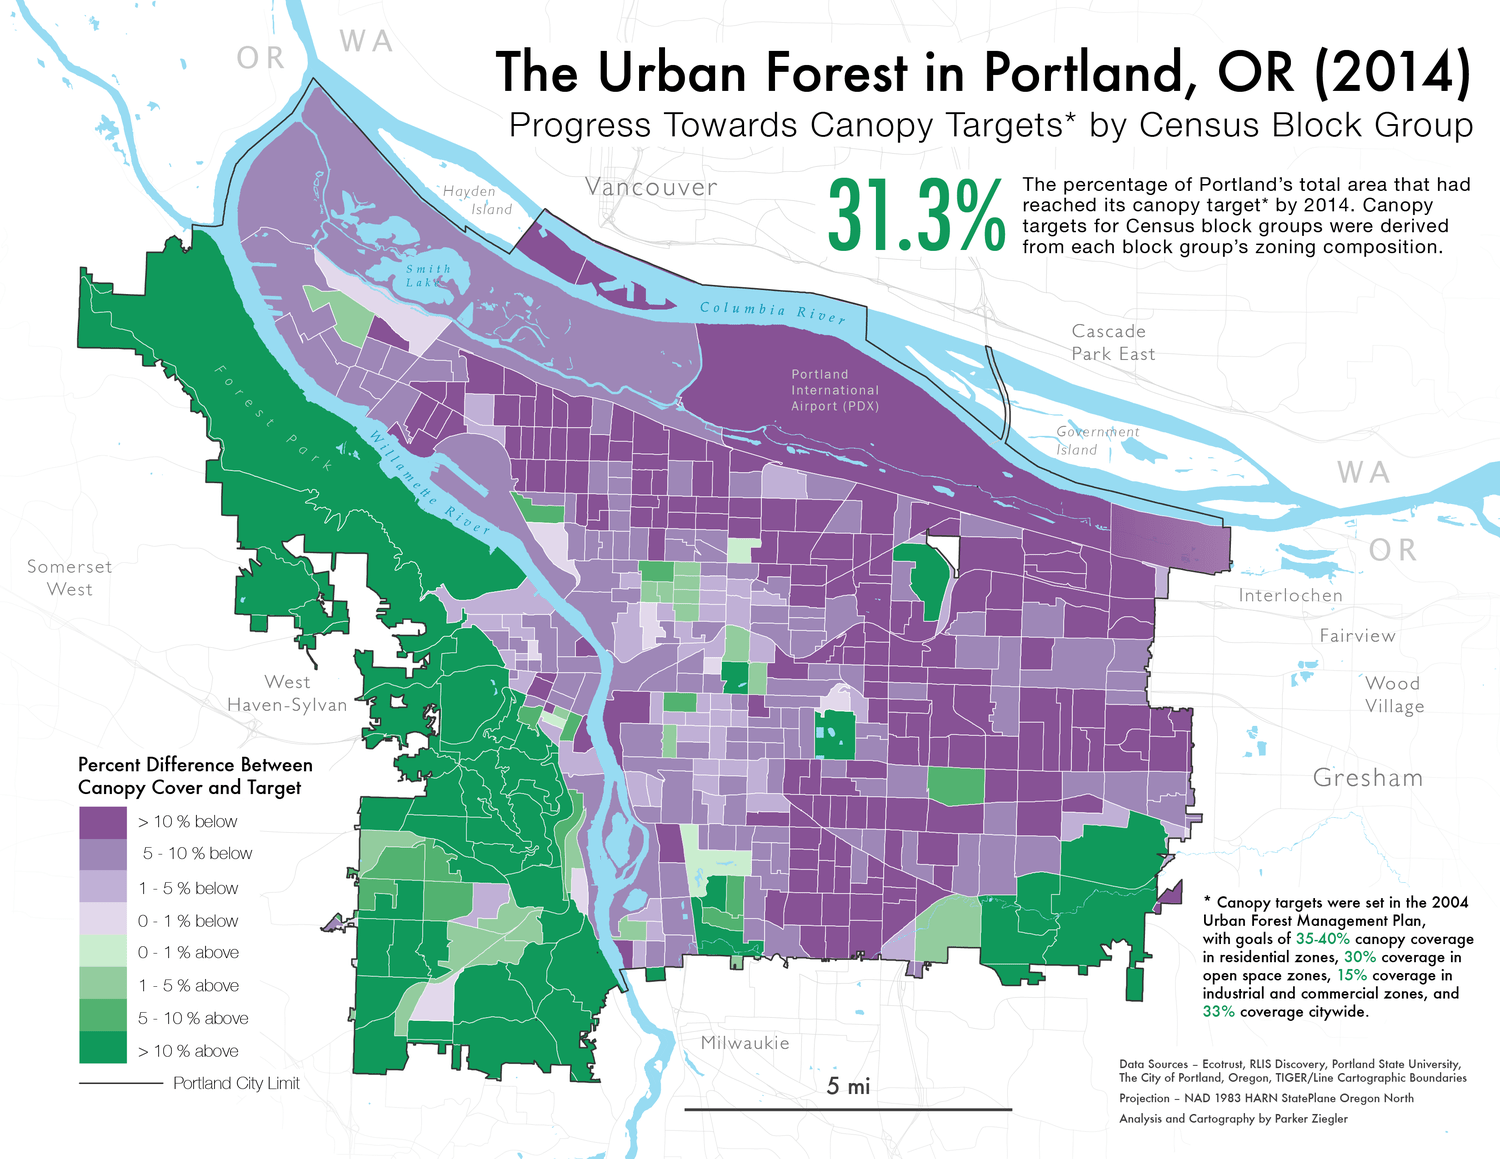 A map of Portland's urban canopy cover compared to city targets by Census Block Group in 2014.